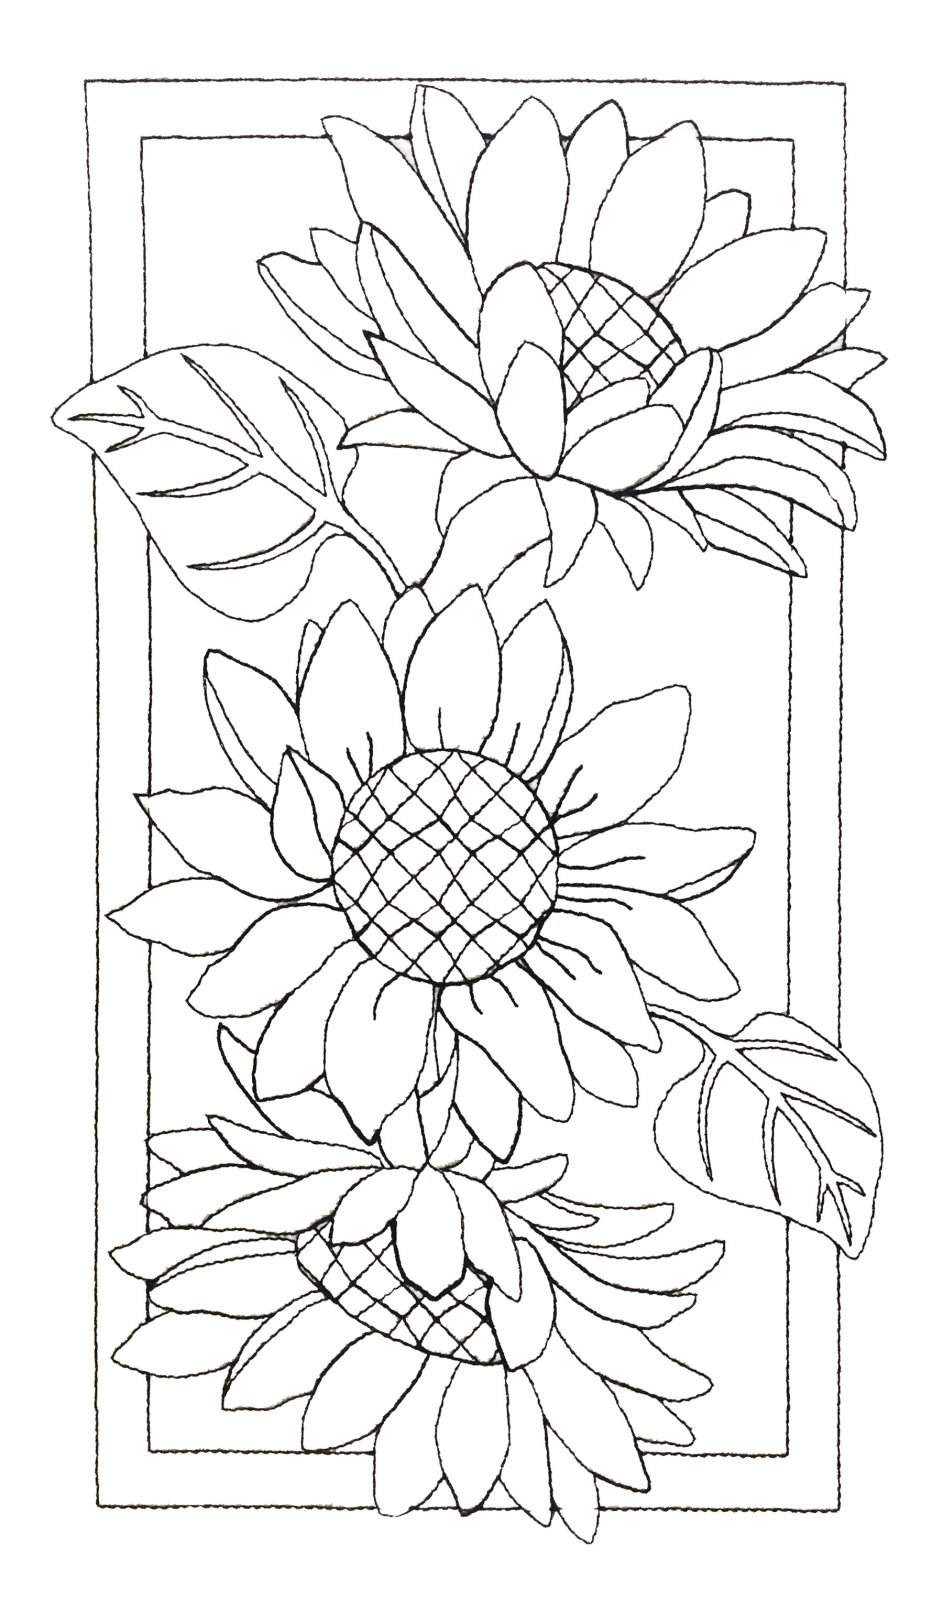 Pre-Stitched Art Applique blocks for coloring- Large Sunflowers(QA-14S)